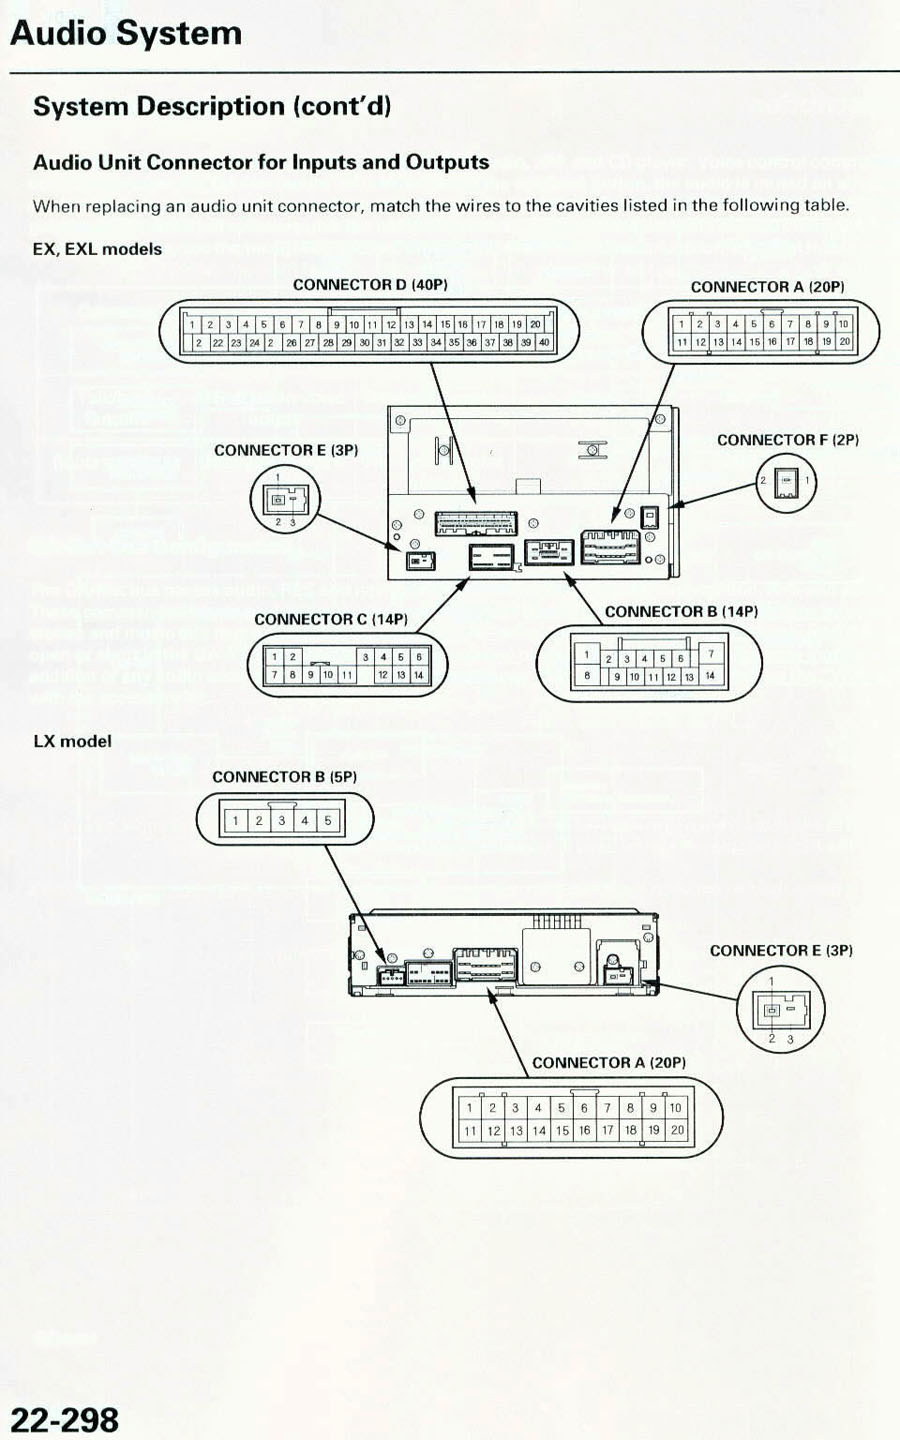 32969d1200063279 re factory subwoofer aftermarket hu audio_connector 2006 re factory subwoofer and aftermarket hu honda pilot honda 2008 Honda Pilot Engine Diagram at bayanpartner.co